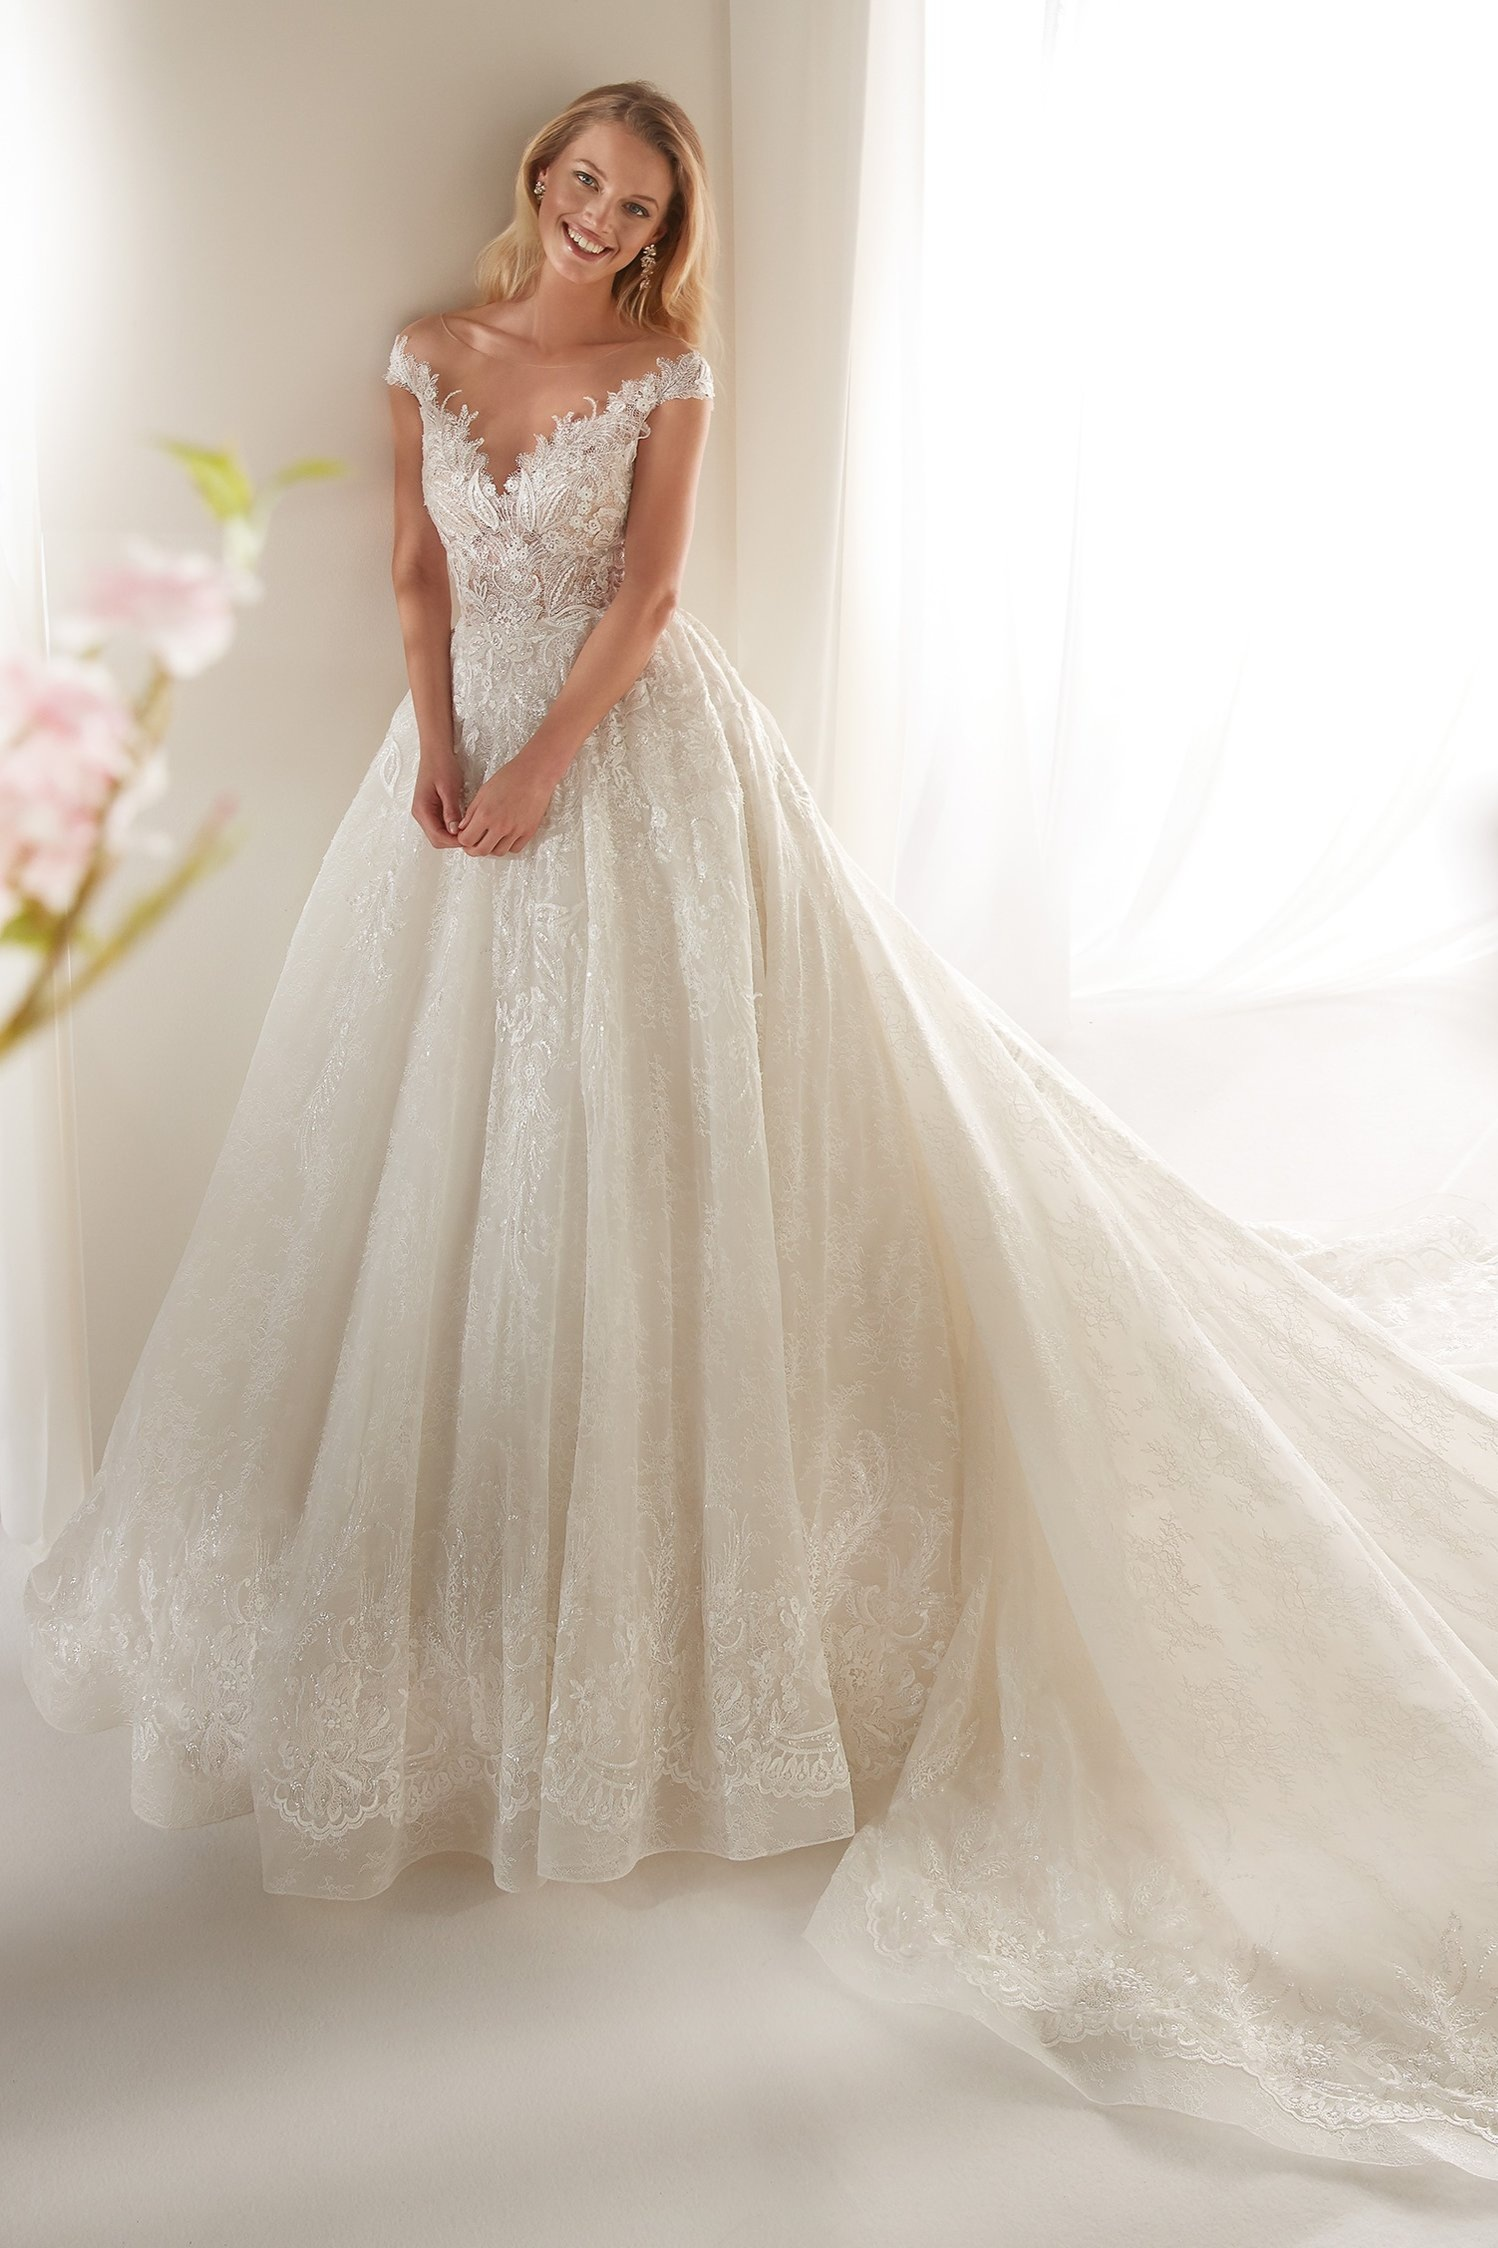 Colet by Nicole Spose Wedding Dresses | Romantic Lace Sparkle Ballgown Illusion Neckline Wedding Dress